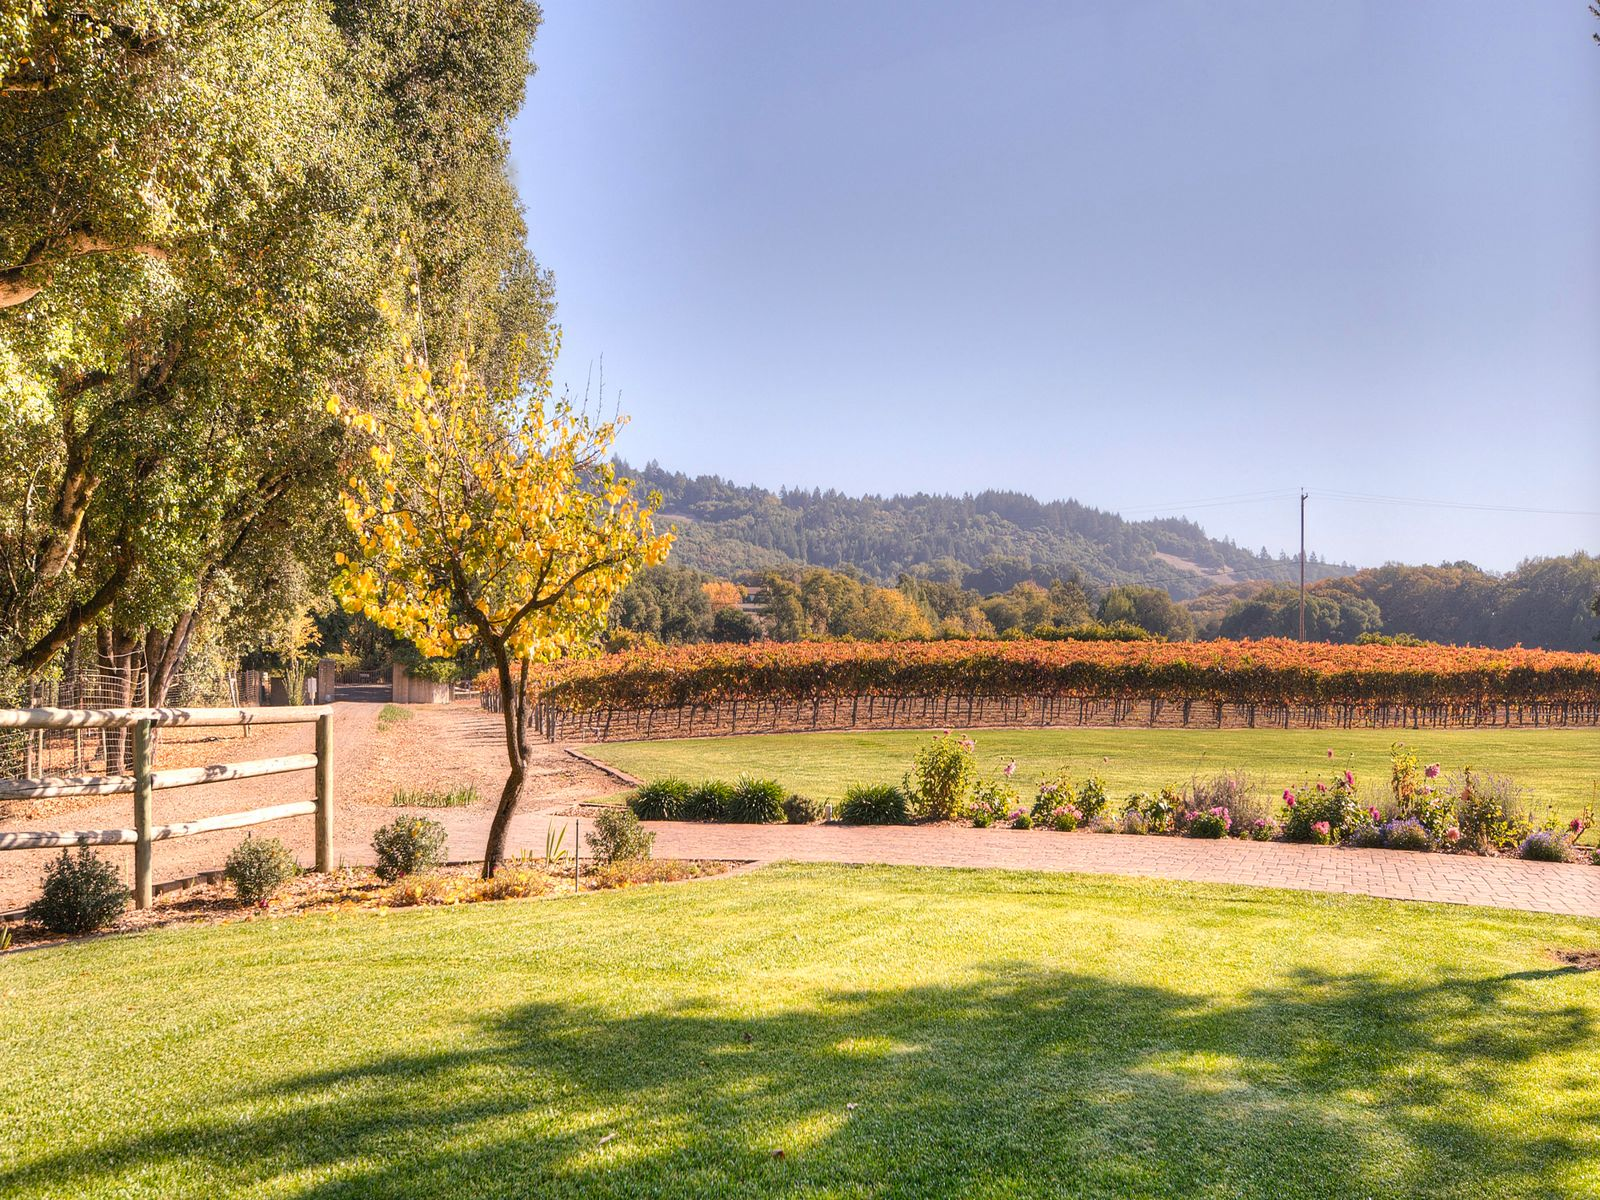 Looking East over approx. 2 ac of Syrah vineyard